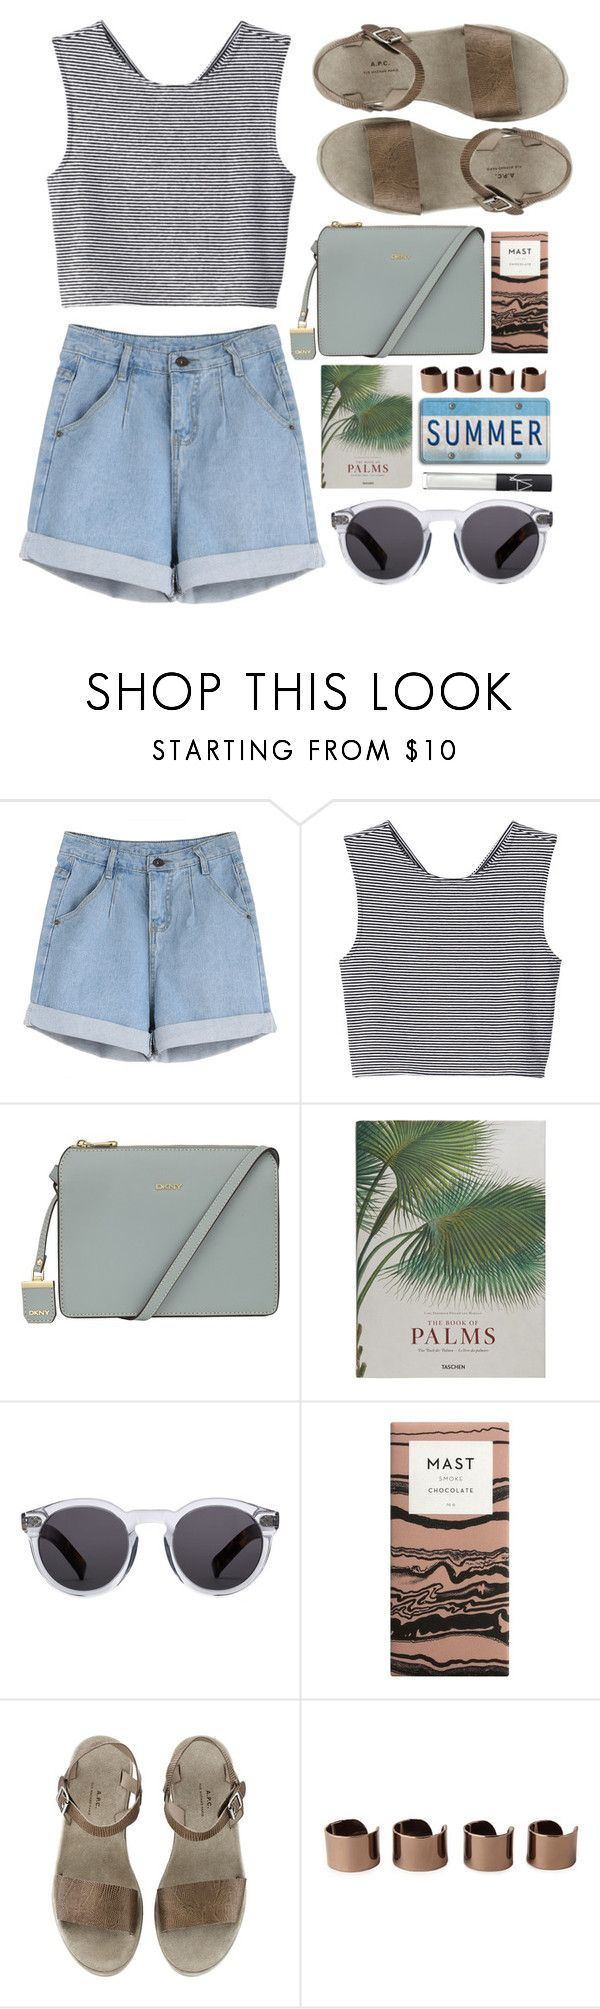 """waiting for summer"" by rosiee22 ❤ liked on Polyvore featuring Monki, DKNY, Taschen, Illesteva, Maison Margiela and NARS Cosmetics"